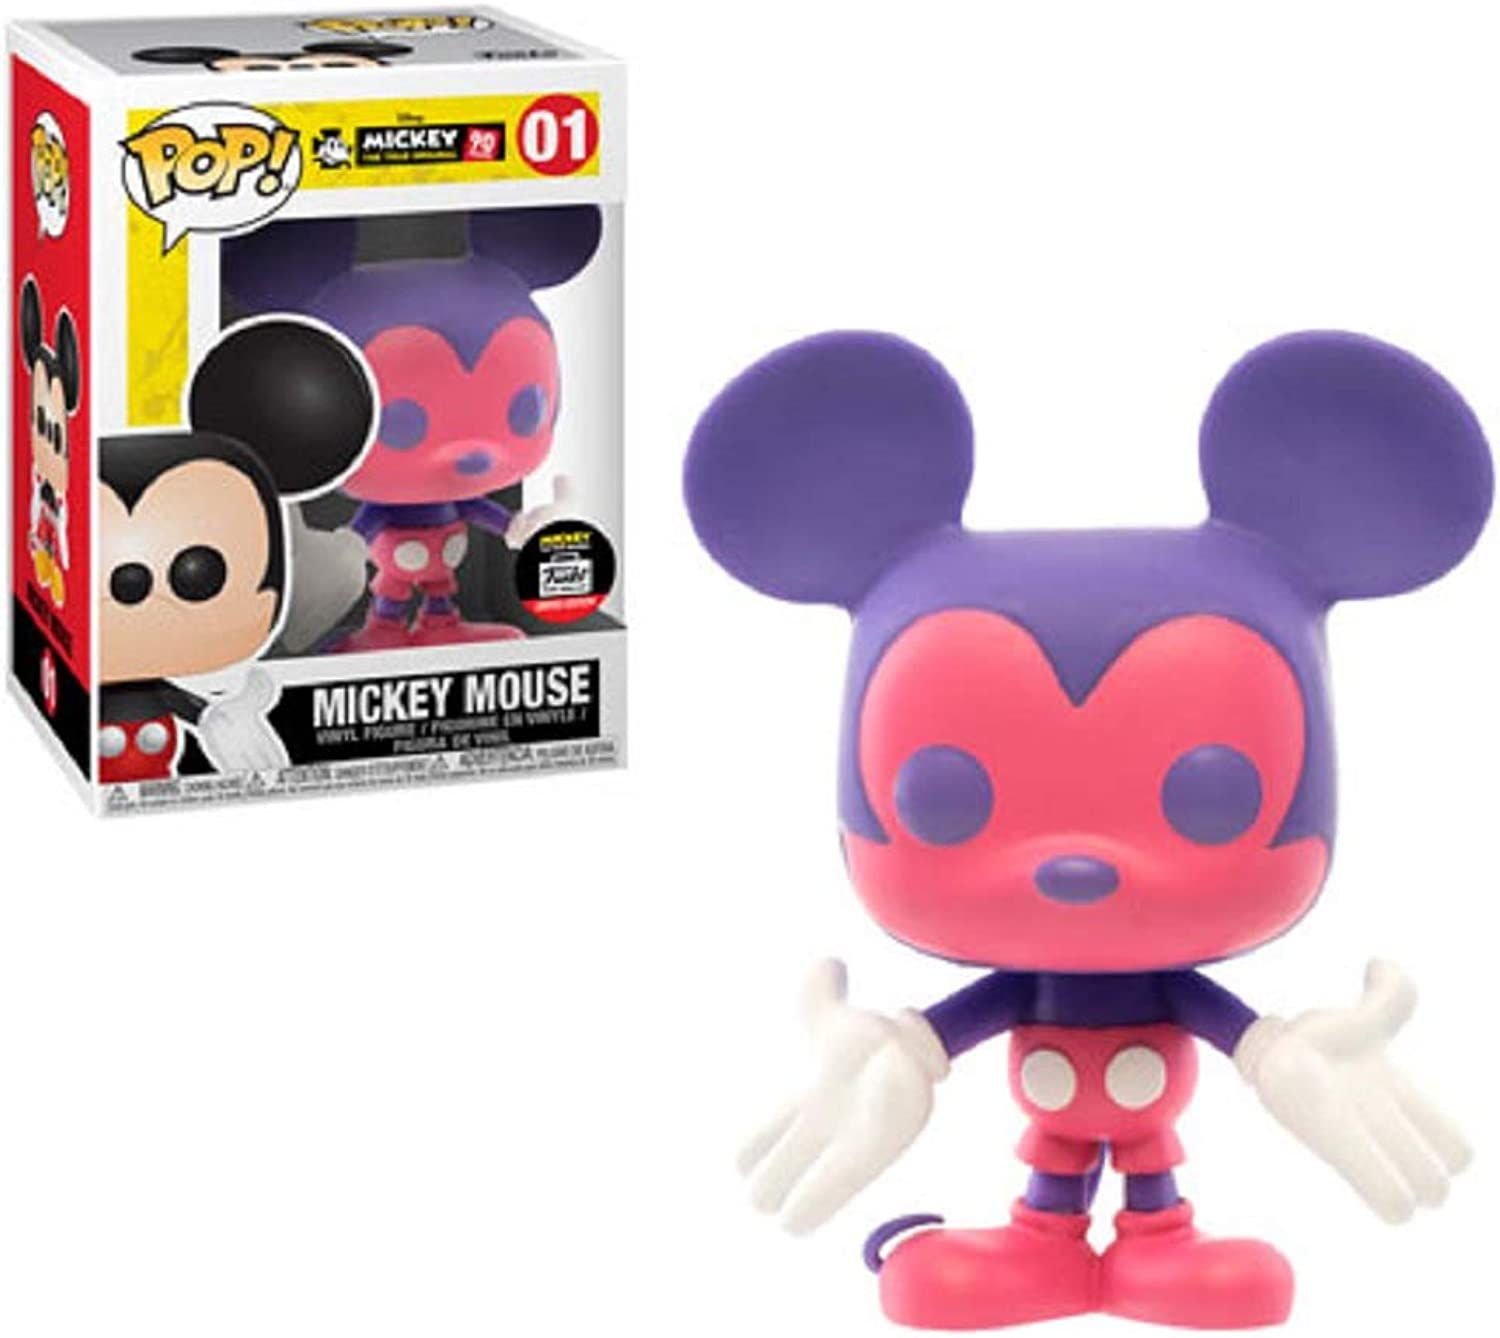 Funko Pop  Disney Mickey Mouse Pink & Purple  01 Funko Shop Limited Edition Exclusive